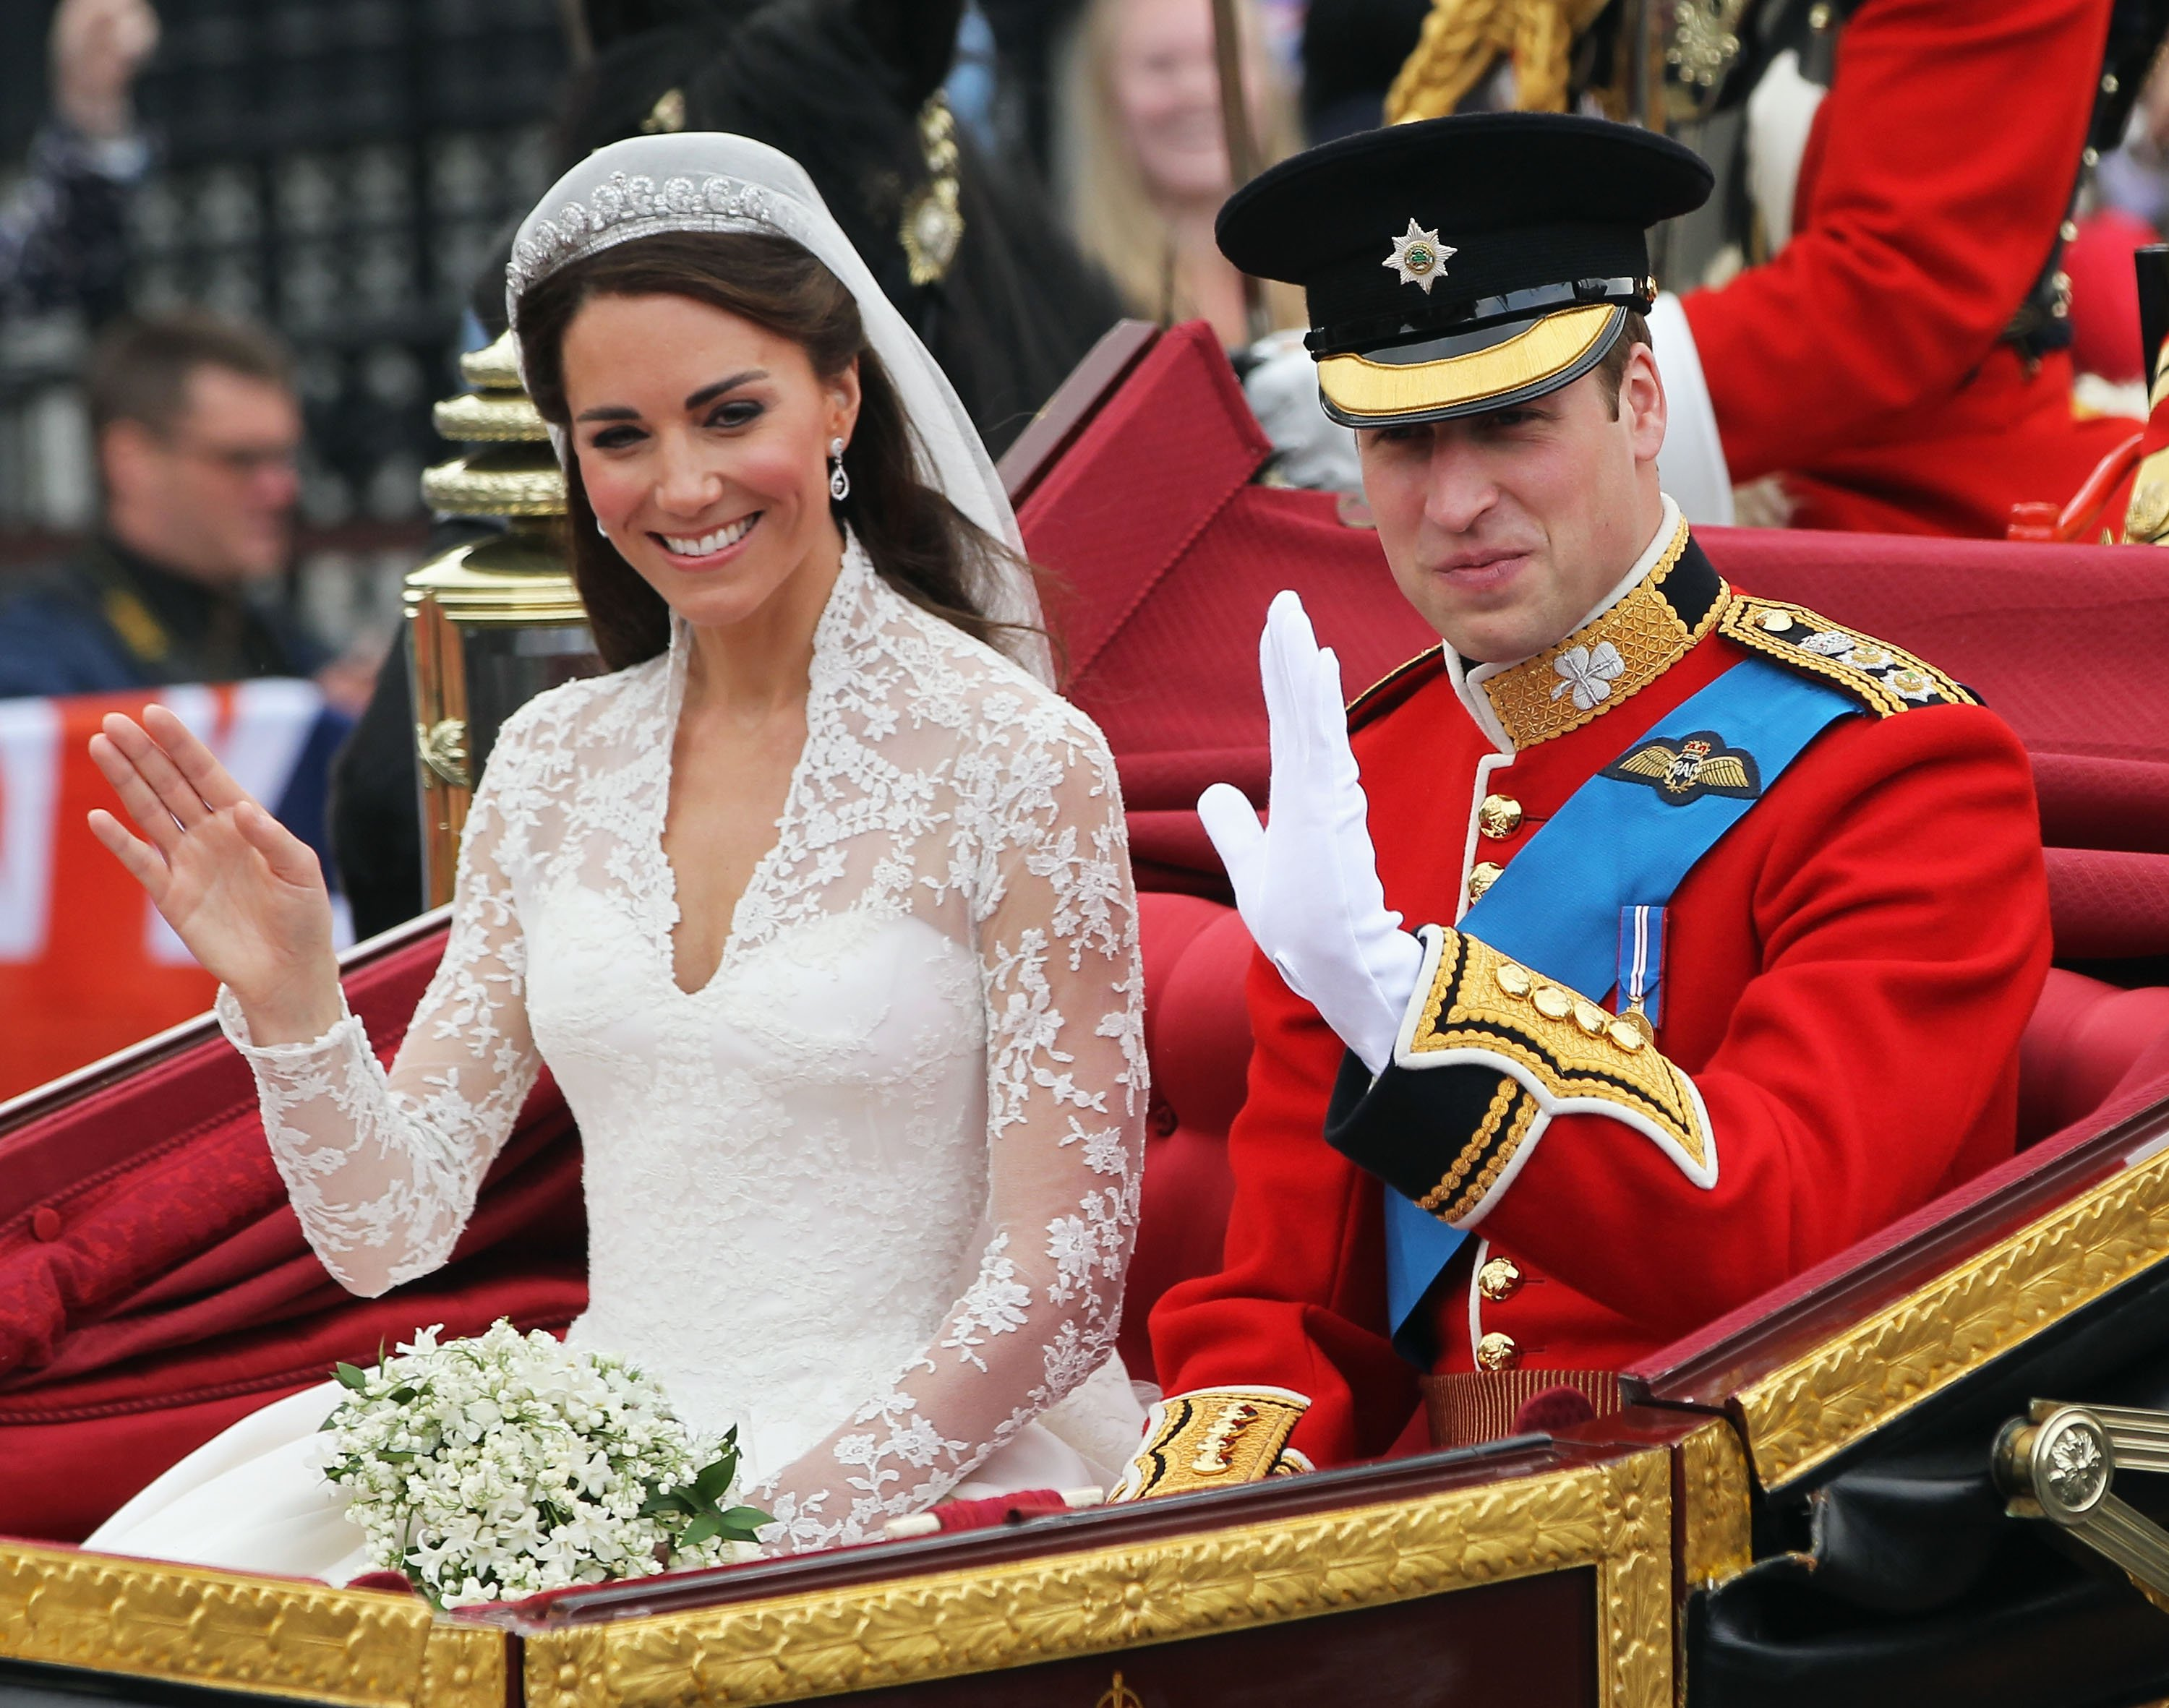 Prince William and Duchess Kate after their marriage on April 29, 2011 in London, England | Source: Getty Images/Global Images Ukraine